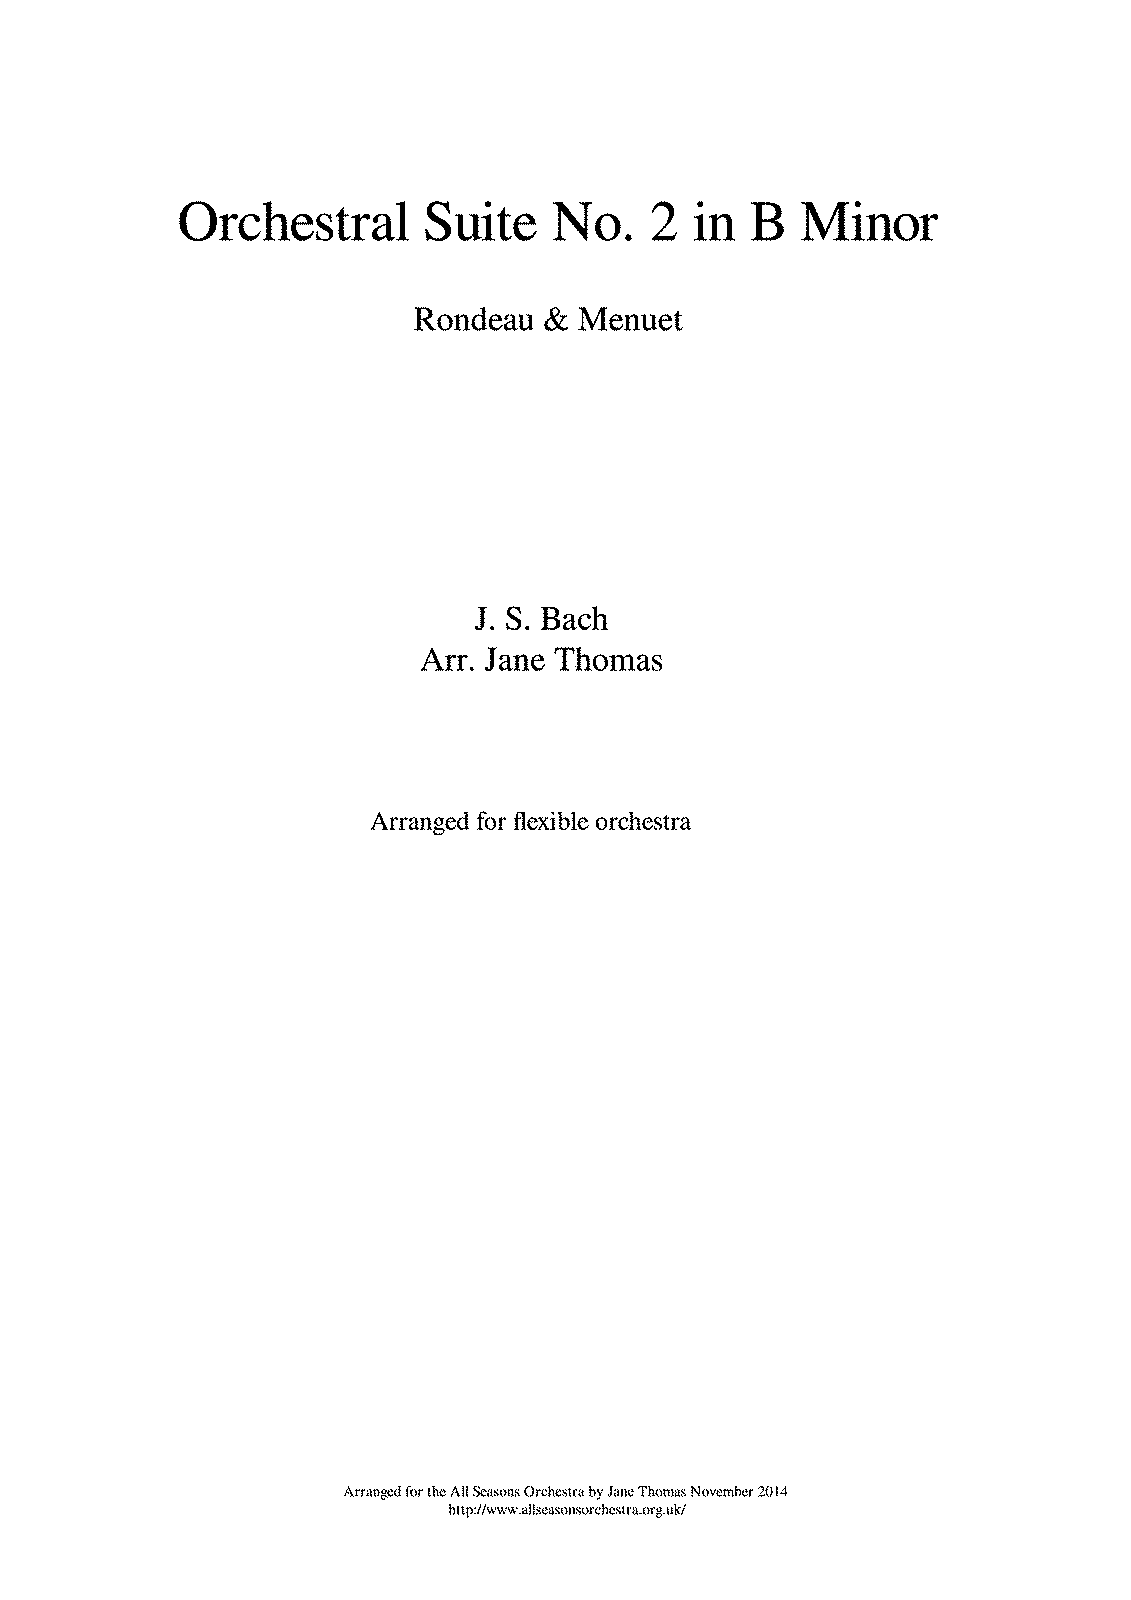 PMLP99998-Bach - Orchestra suite in B Minor - Rondeau and Minuet - Score.pdf